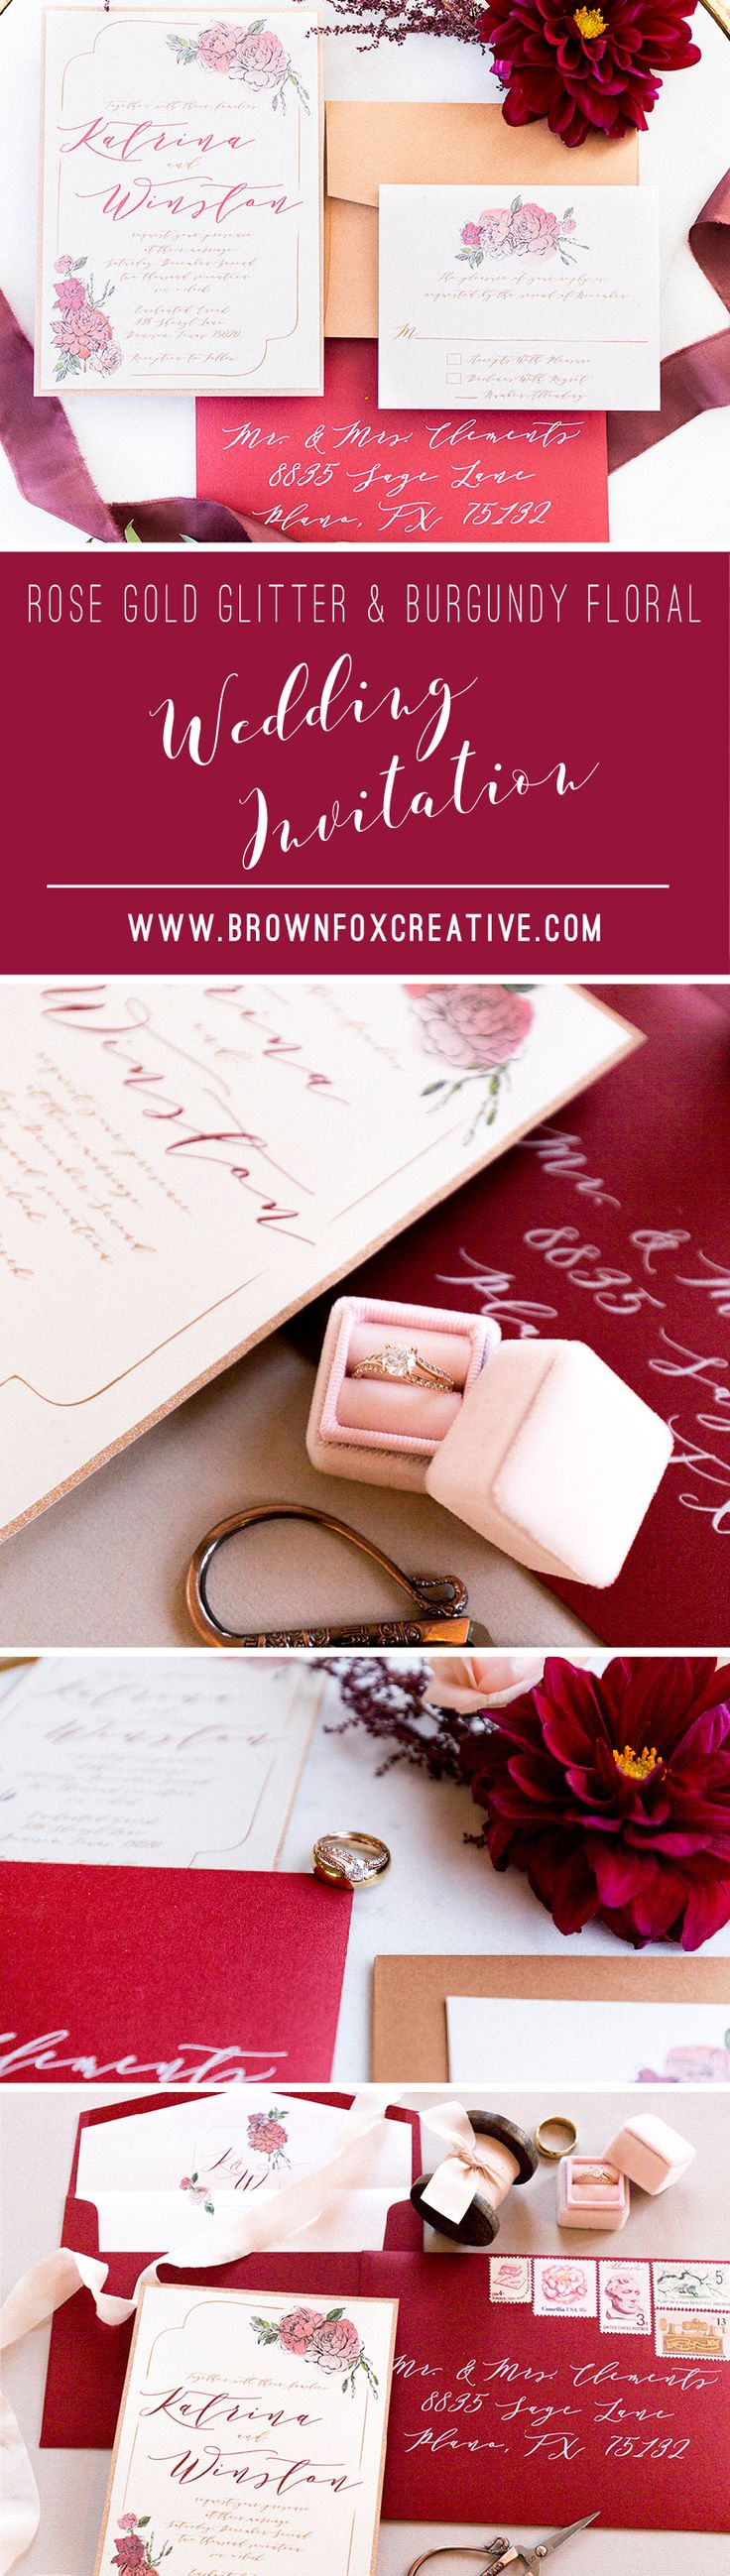 184 best Wedding Invitations images on Pinterest